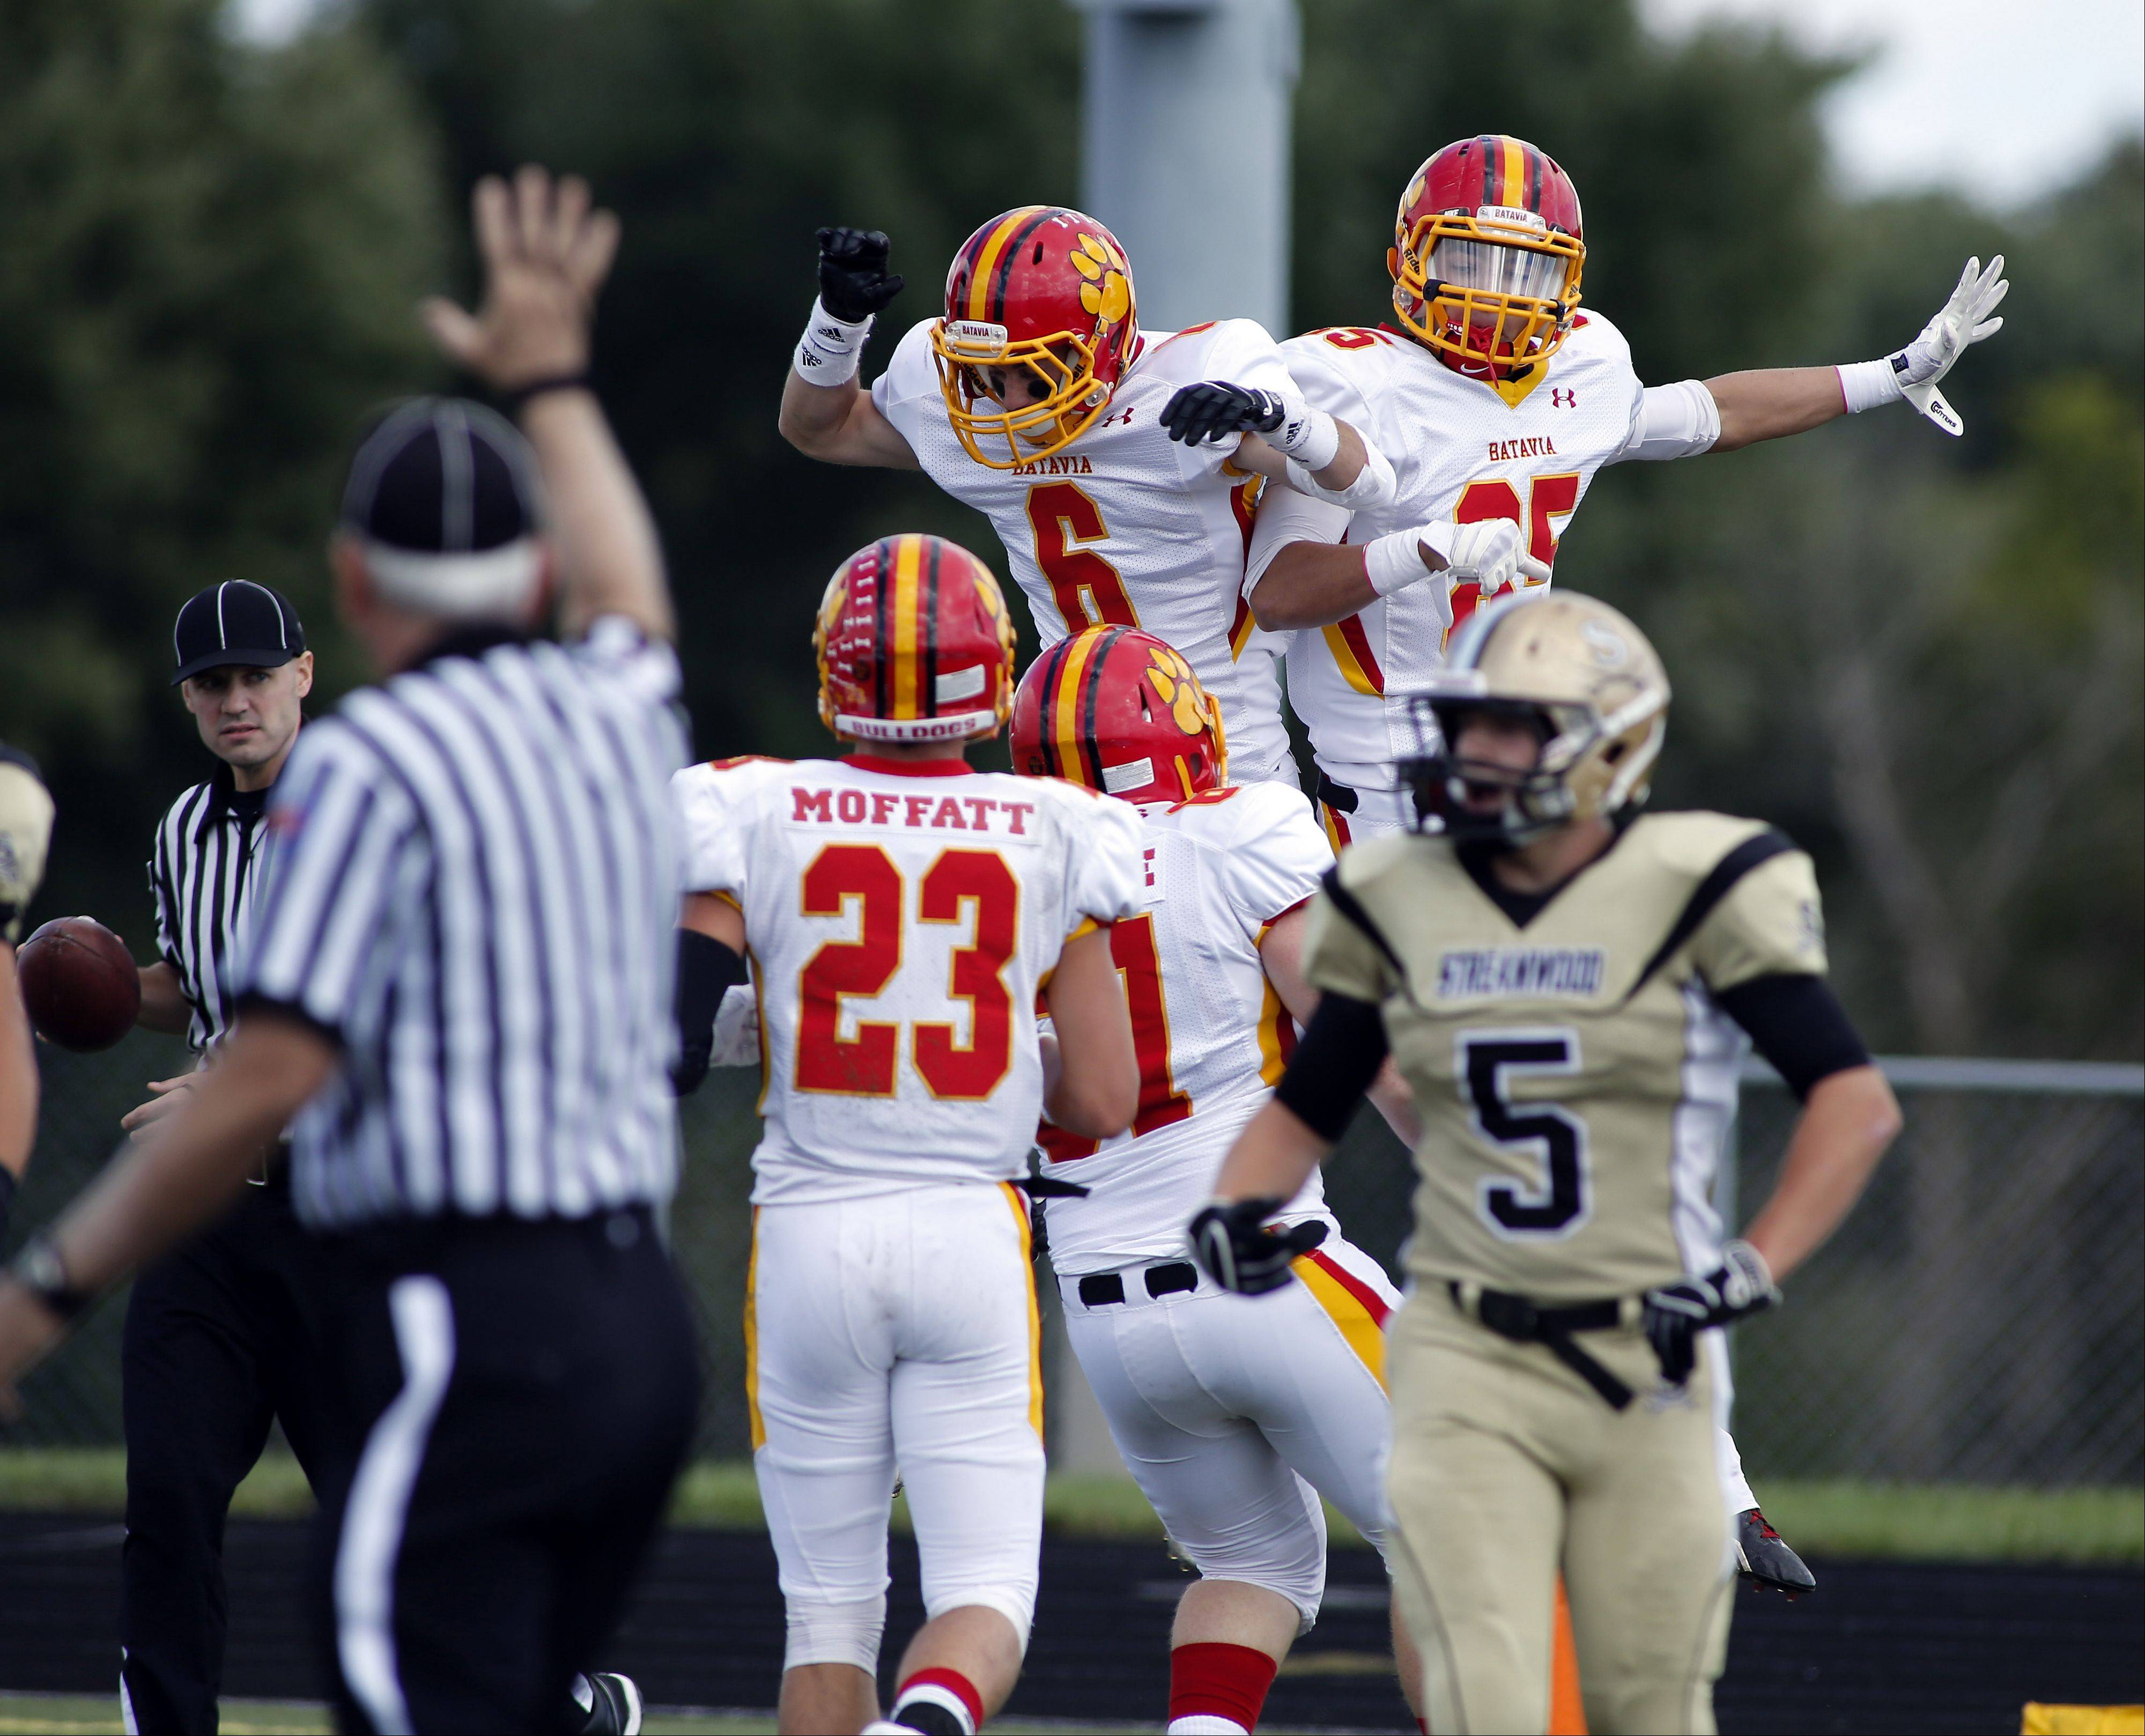 Batavia's Rourke Mullins and Jordan Zwart celebrate a touchdown during Batavia at Streamwood football Saturday at Millennium Field at Streamwood High School.